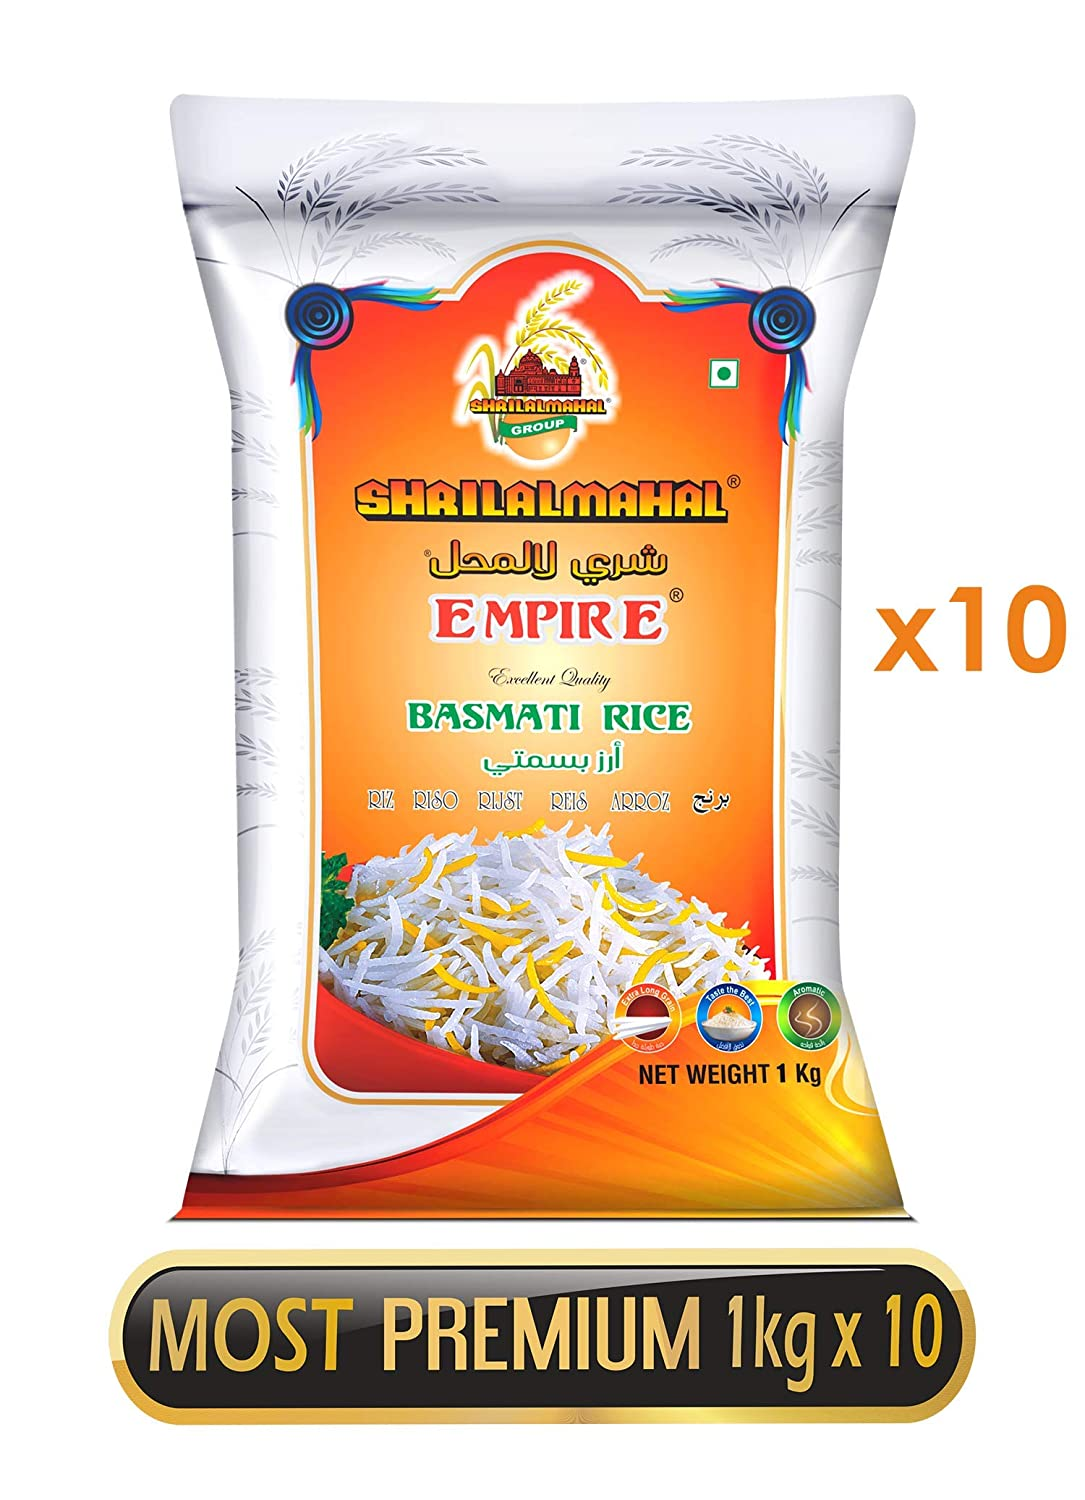 SHRILALMAHAL Empire Basmati Rice, 10Kg